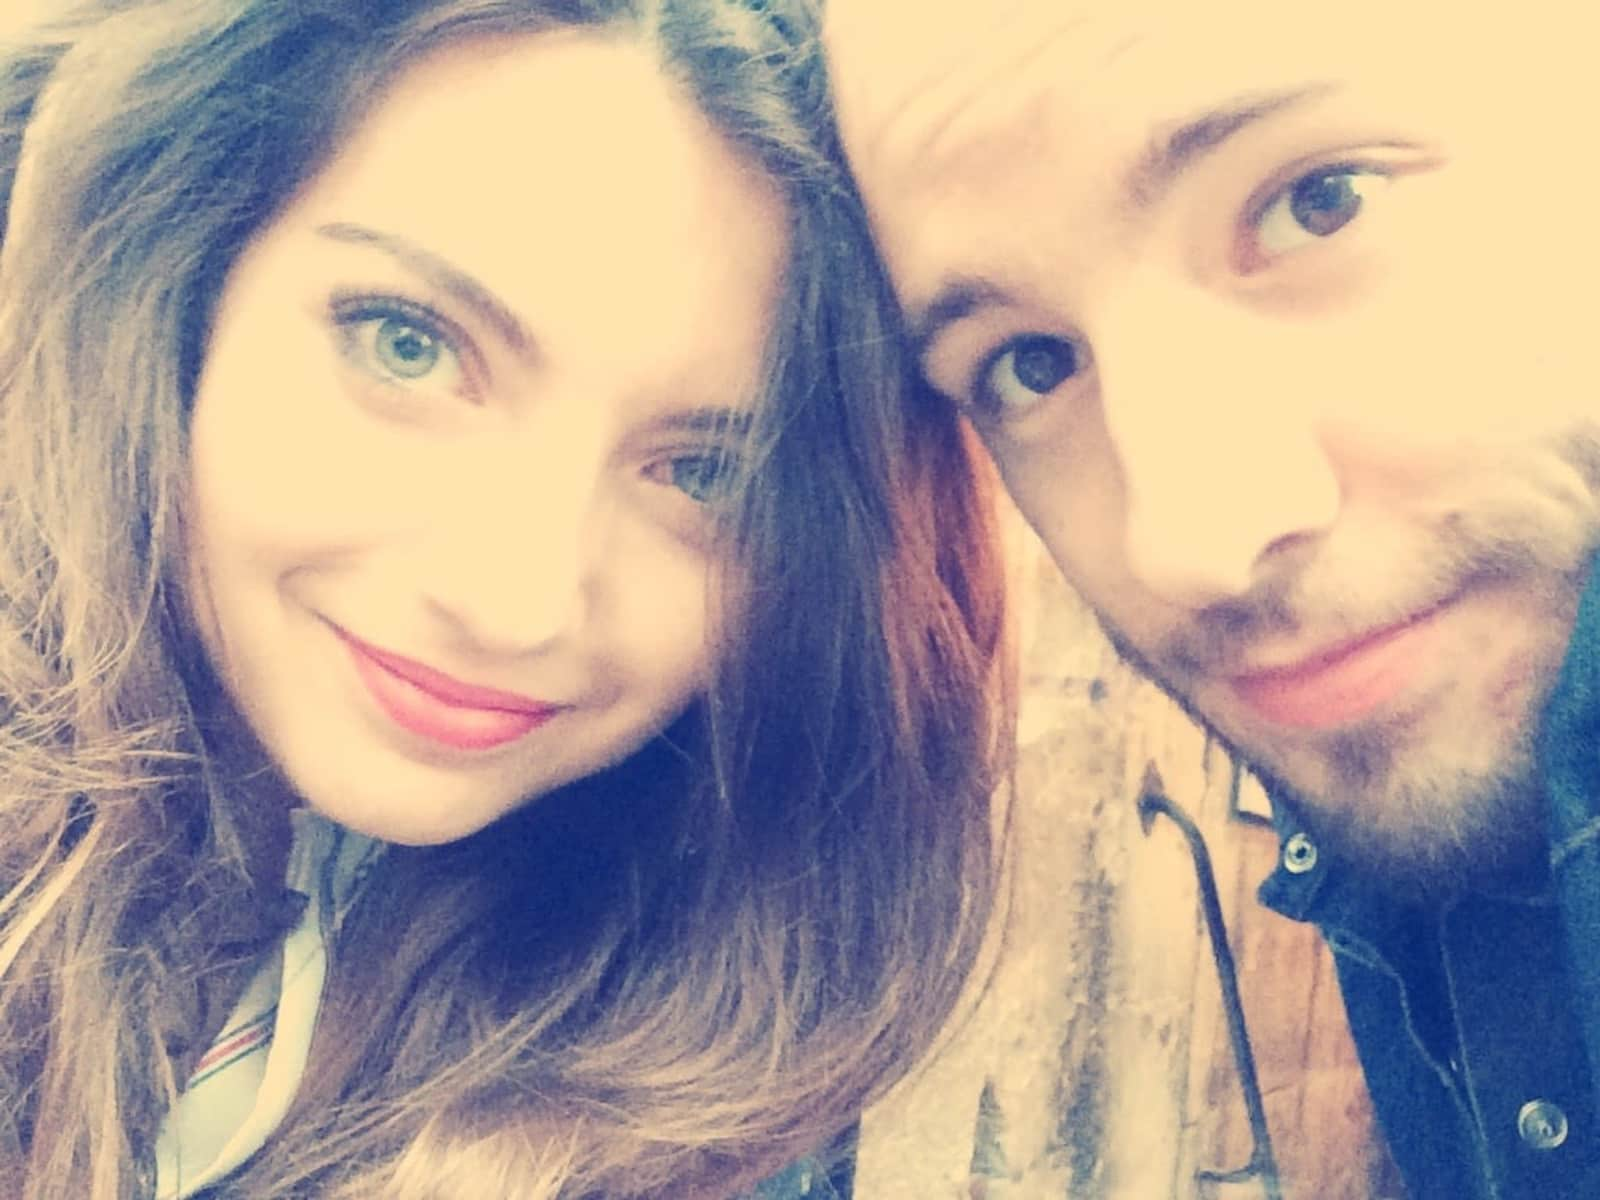 Carla & Thierry from Paris, France